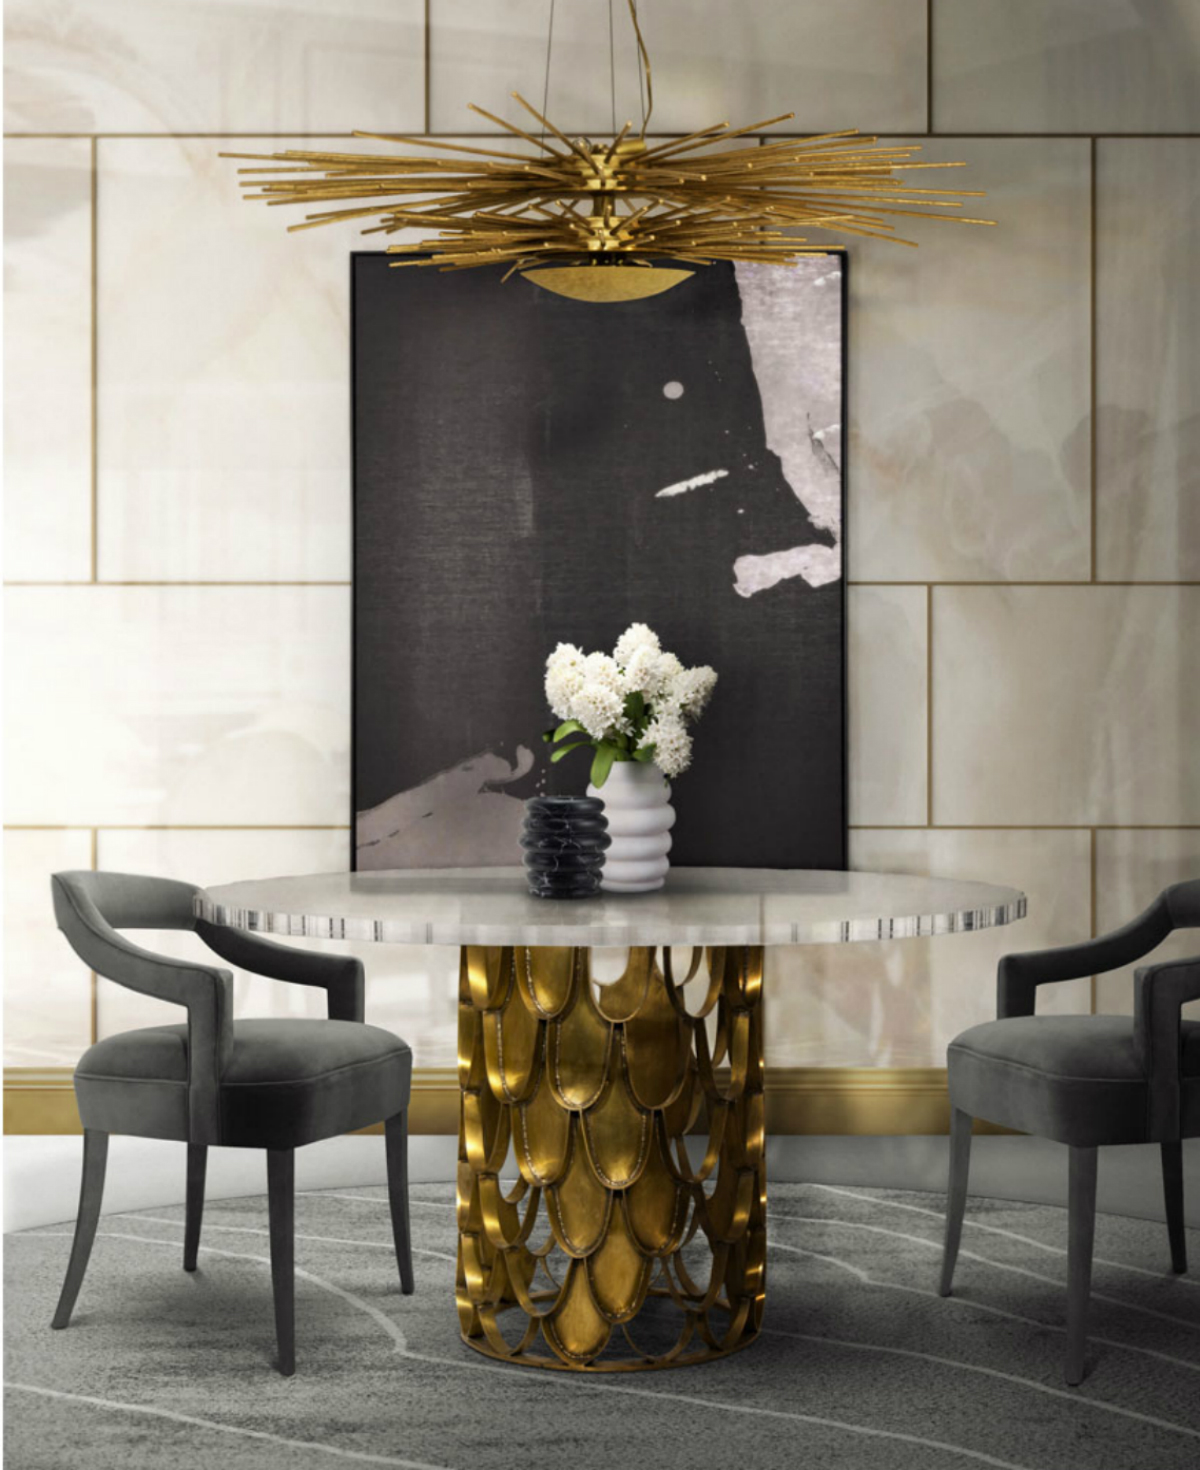 Bespoke Design: 5 Limited Luxury Dining Chairs limited luxury dining chairs Bespoke Design: 5 Limited Luxury Dining Chairs oka